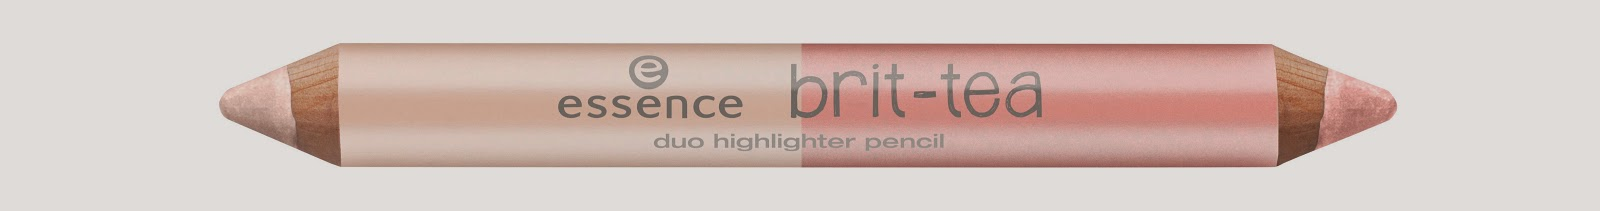 essence-brit-tea-limited-edition-preview-duo-highlighter-pencil